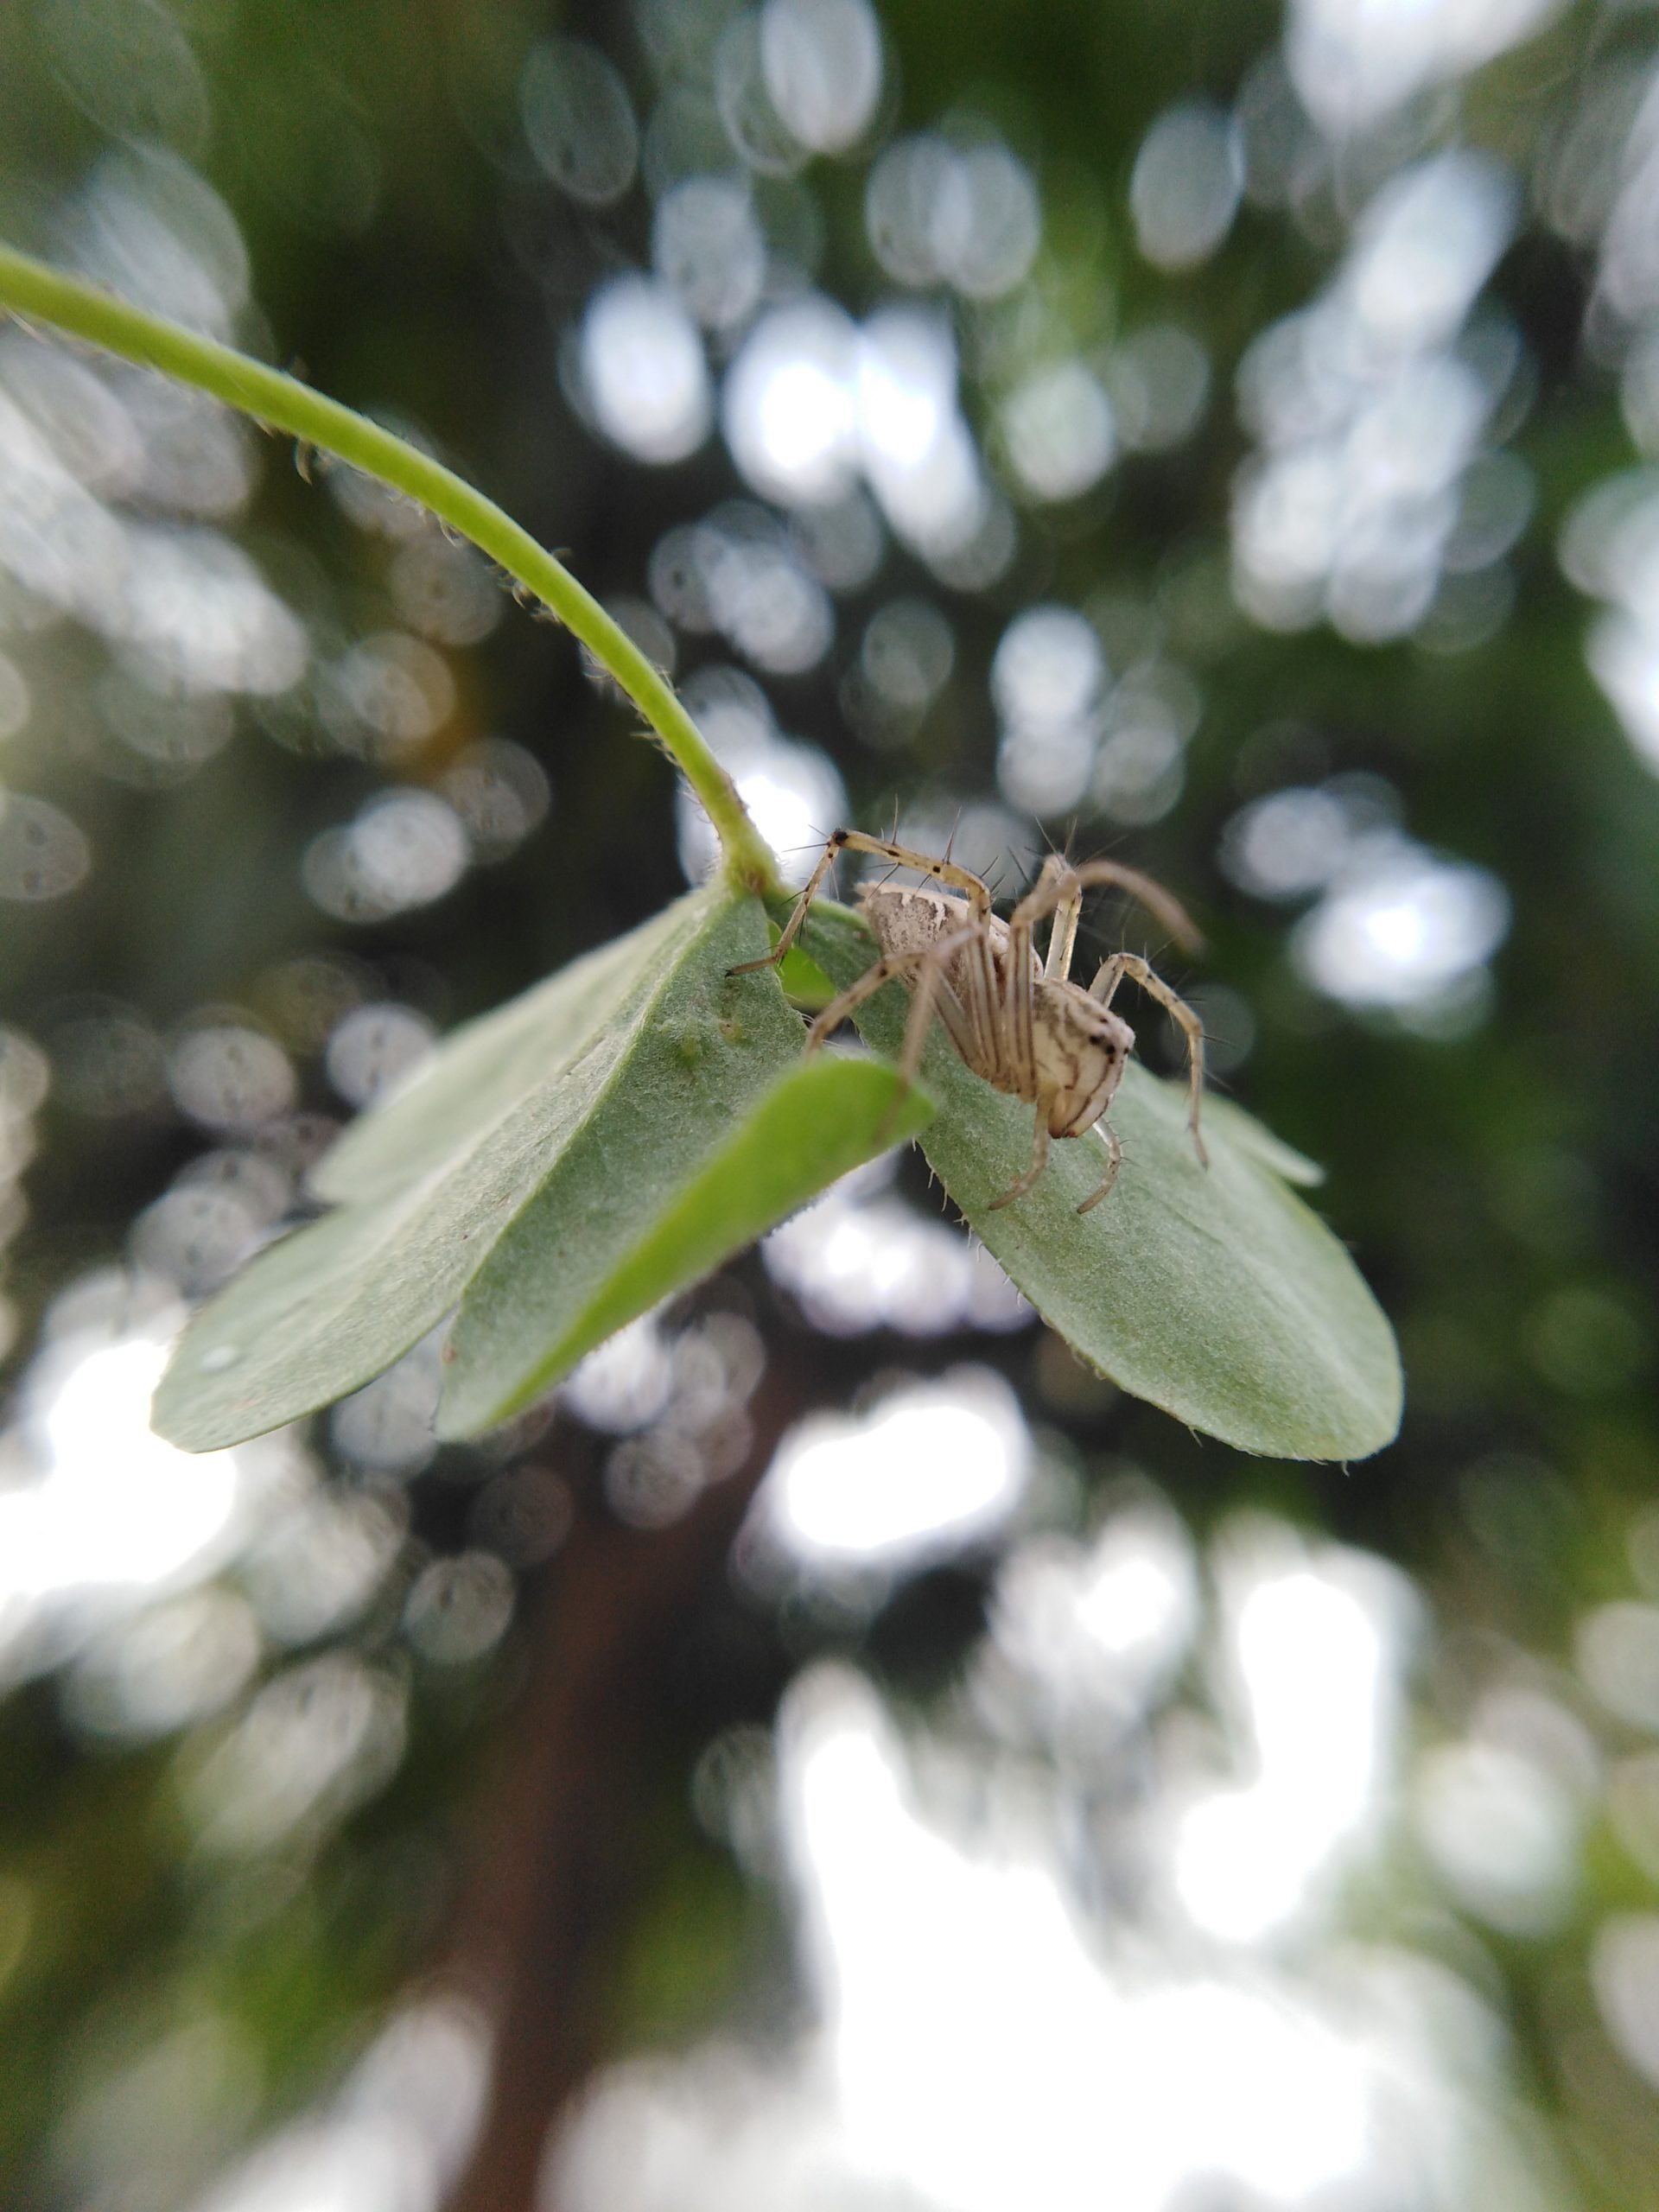 Spider on plant leaf